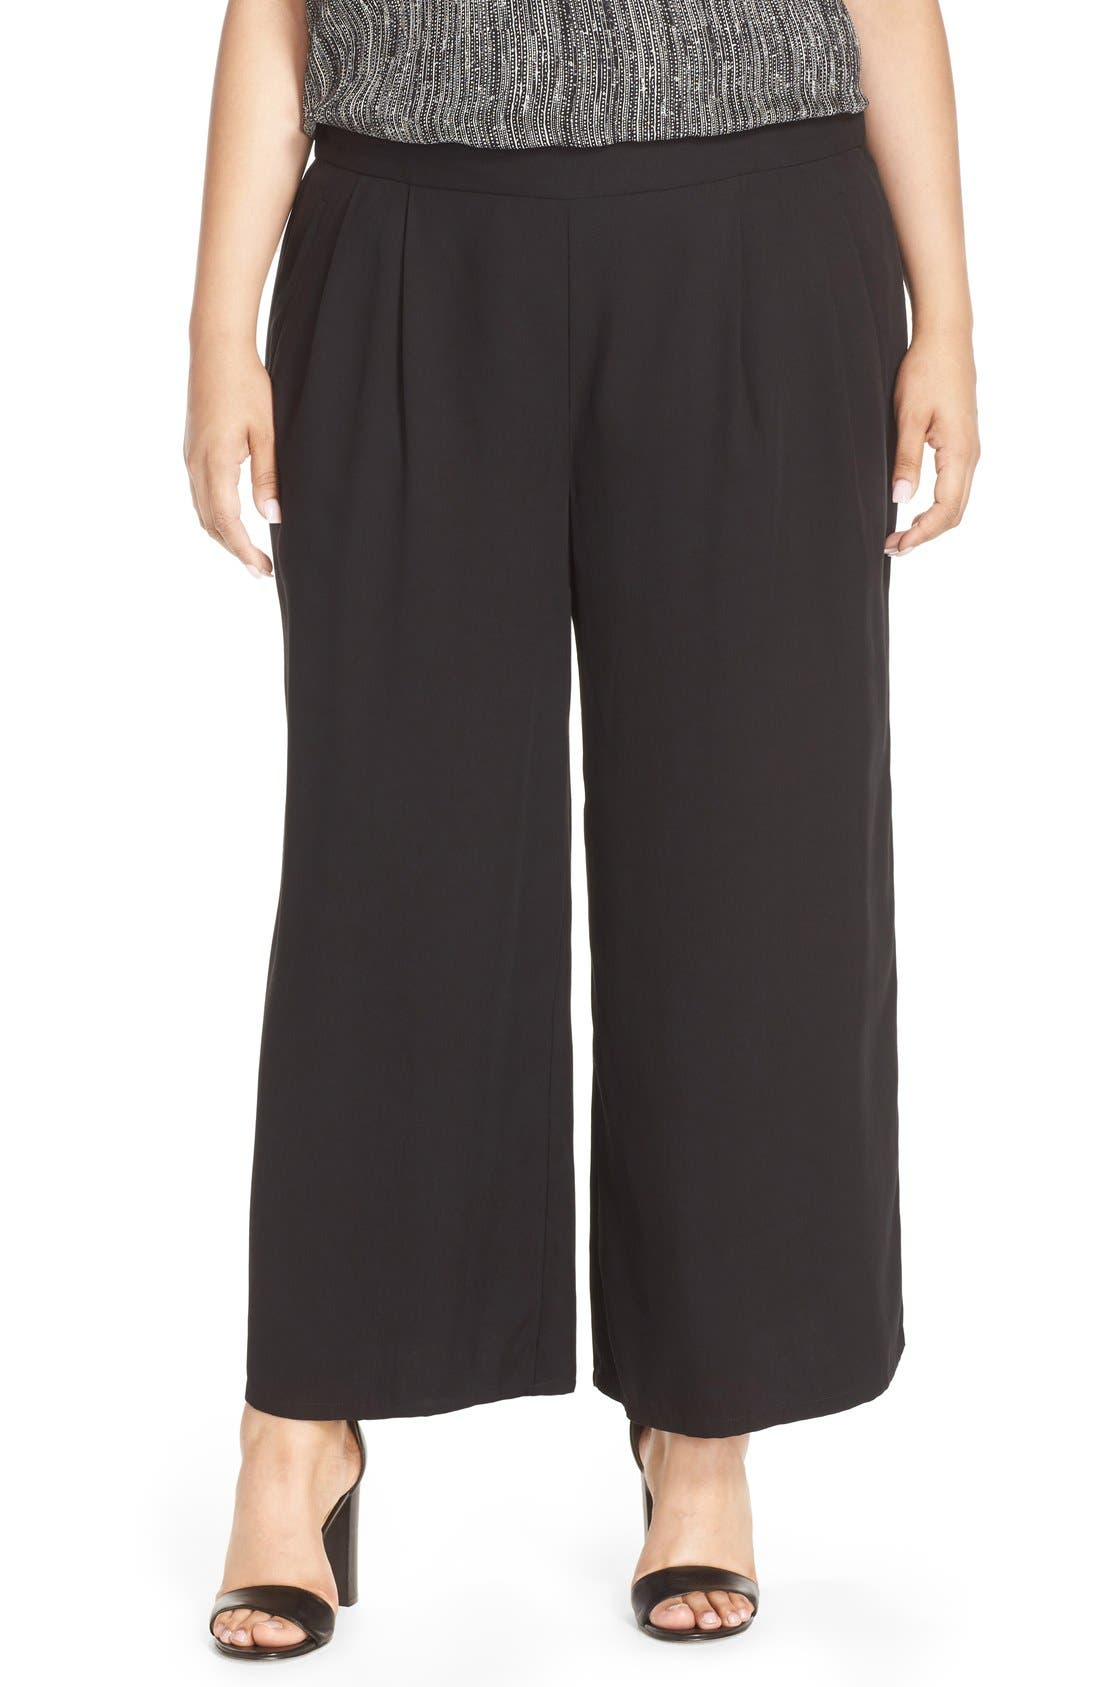 Alternate Image 1 Selected - Eileen Fisher Wide Leg Tencel® Pants (Plus Size)